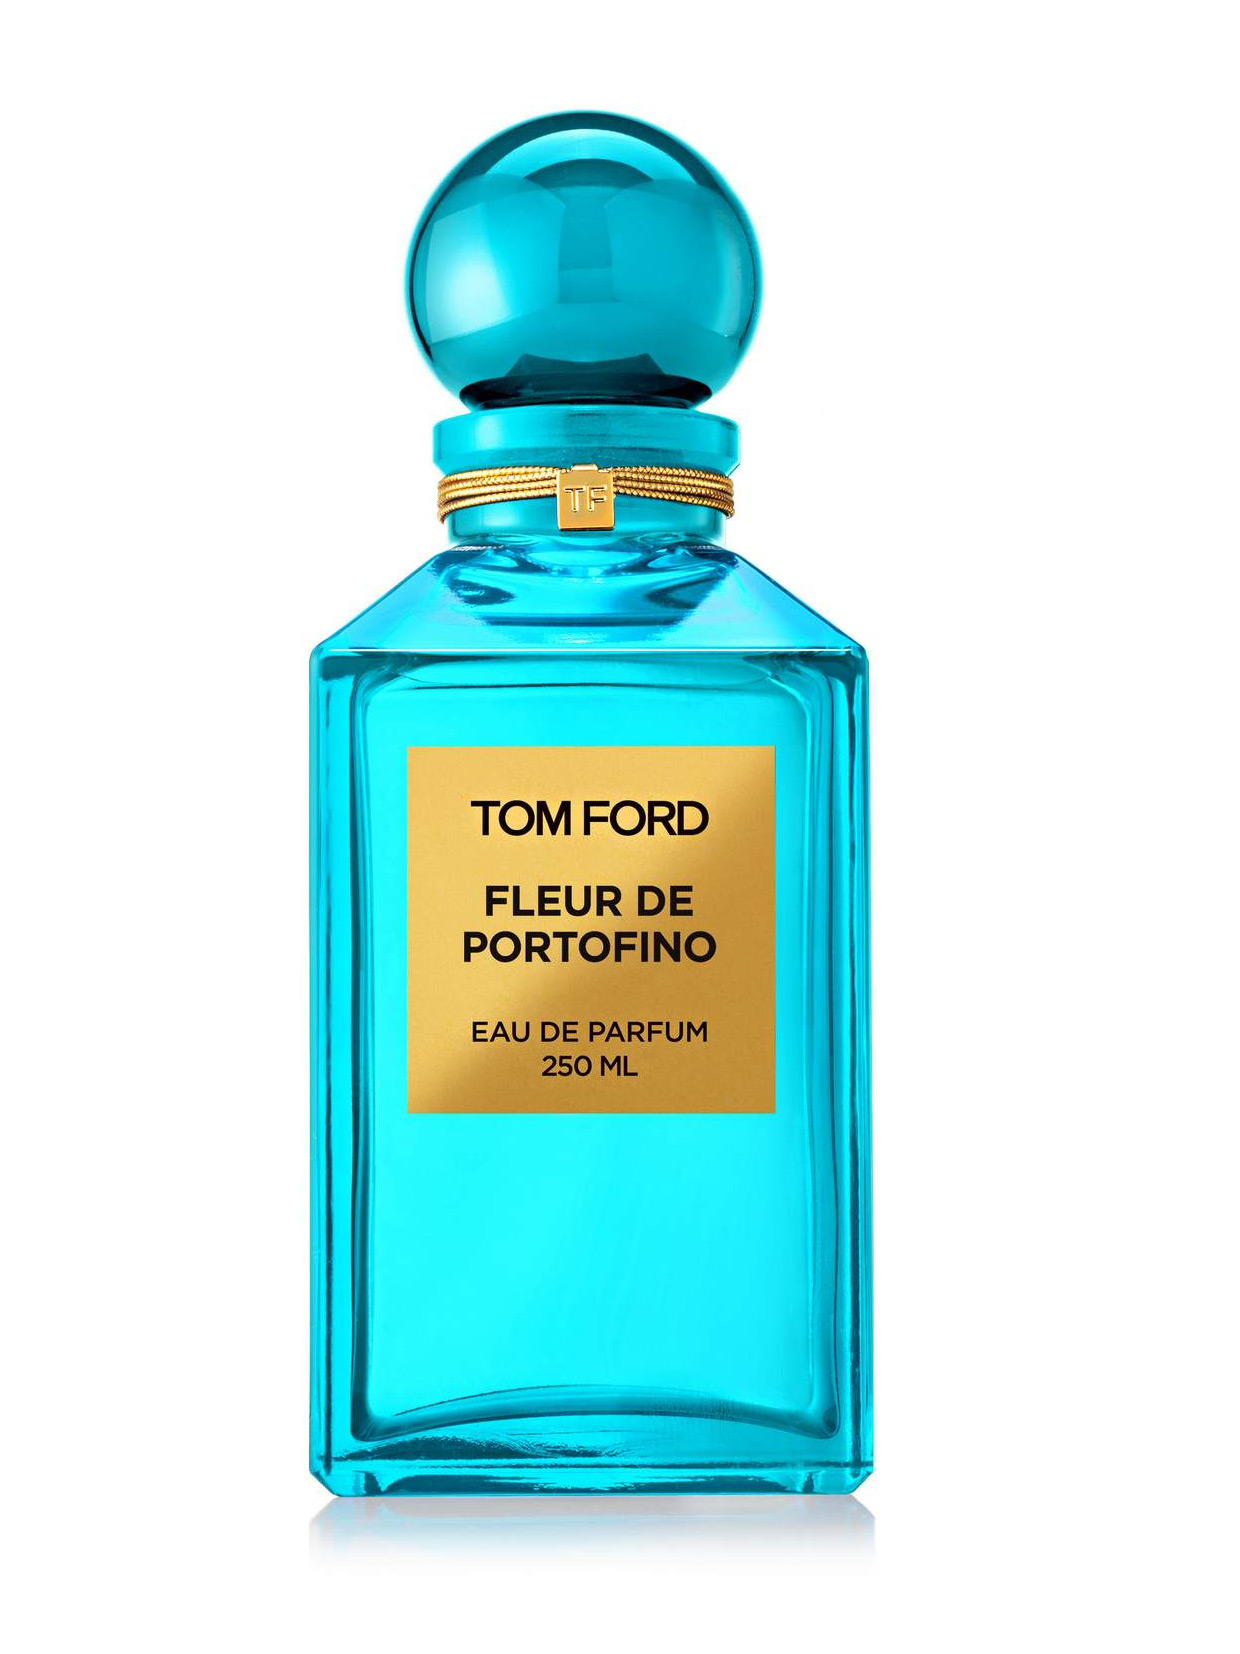 fleur de portofino tom ford parfum ein neues parfum f r. Black Bedroom Furniture Sets. Home Design Ideas